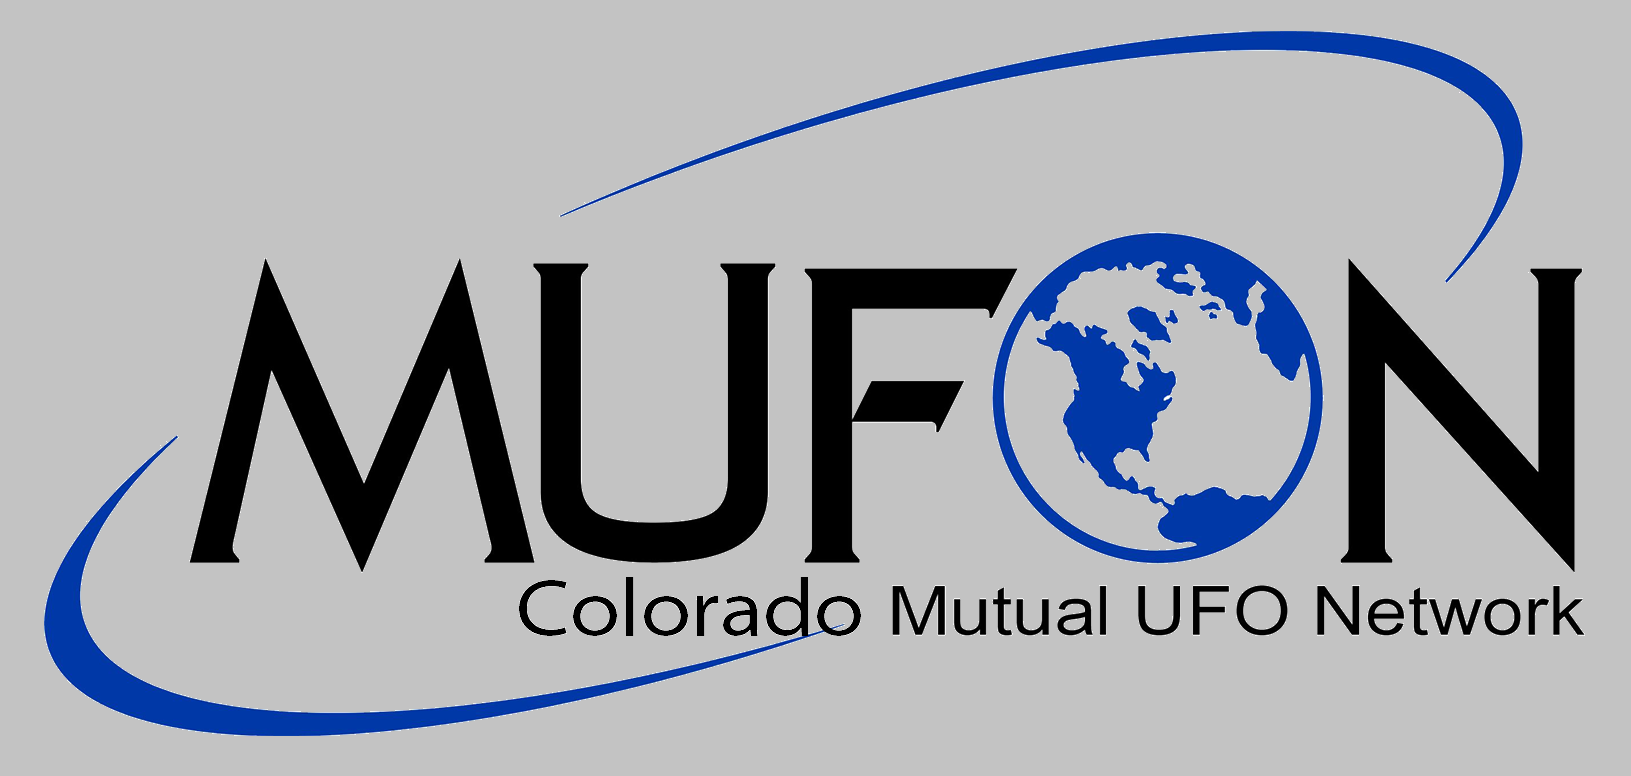 Colorado MUFON